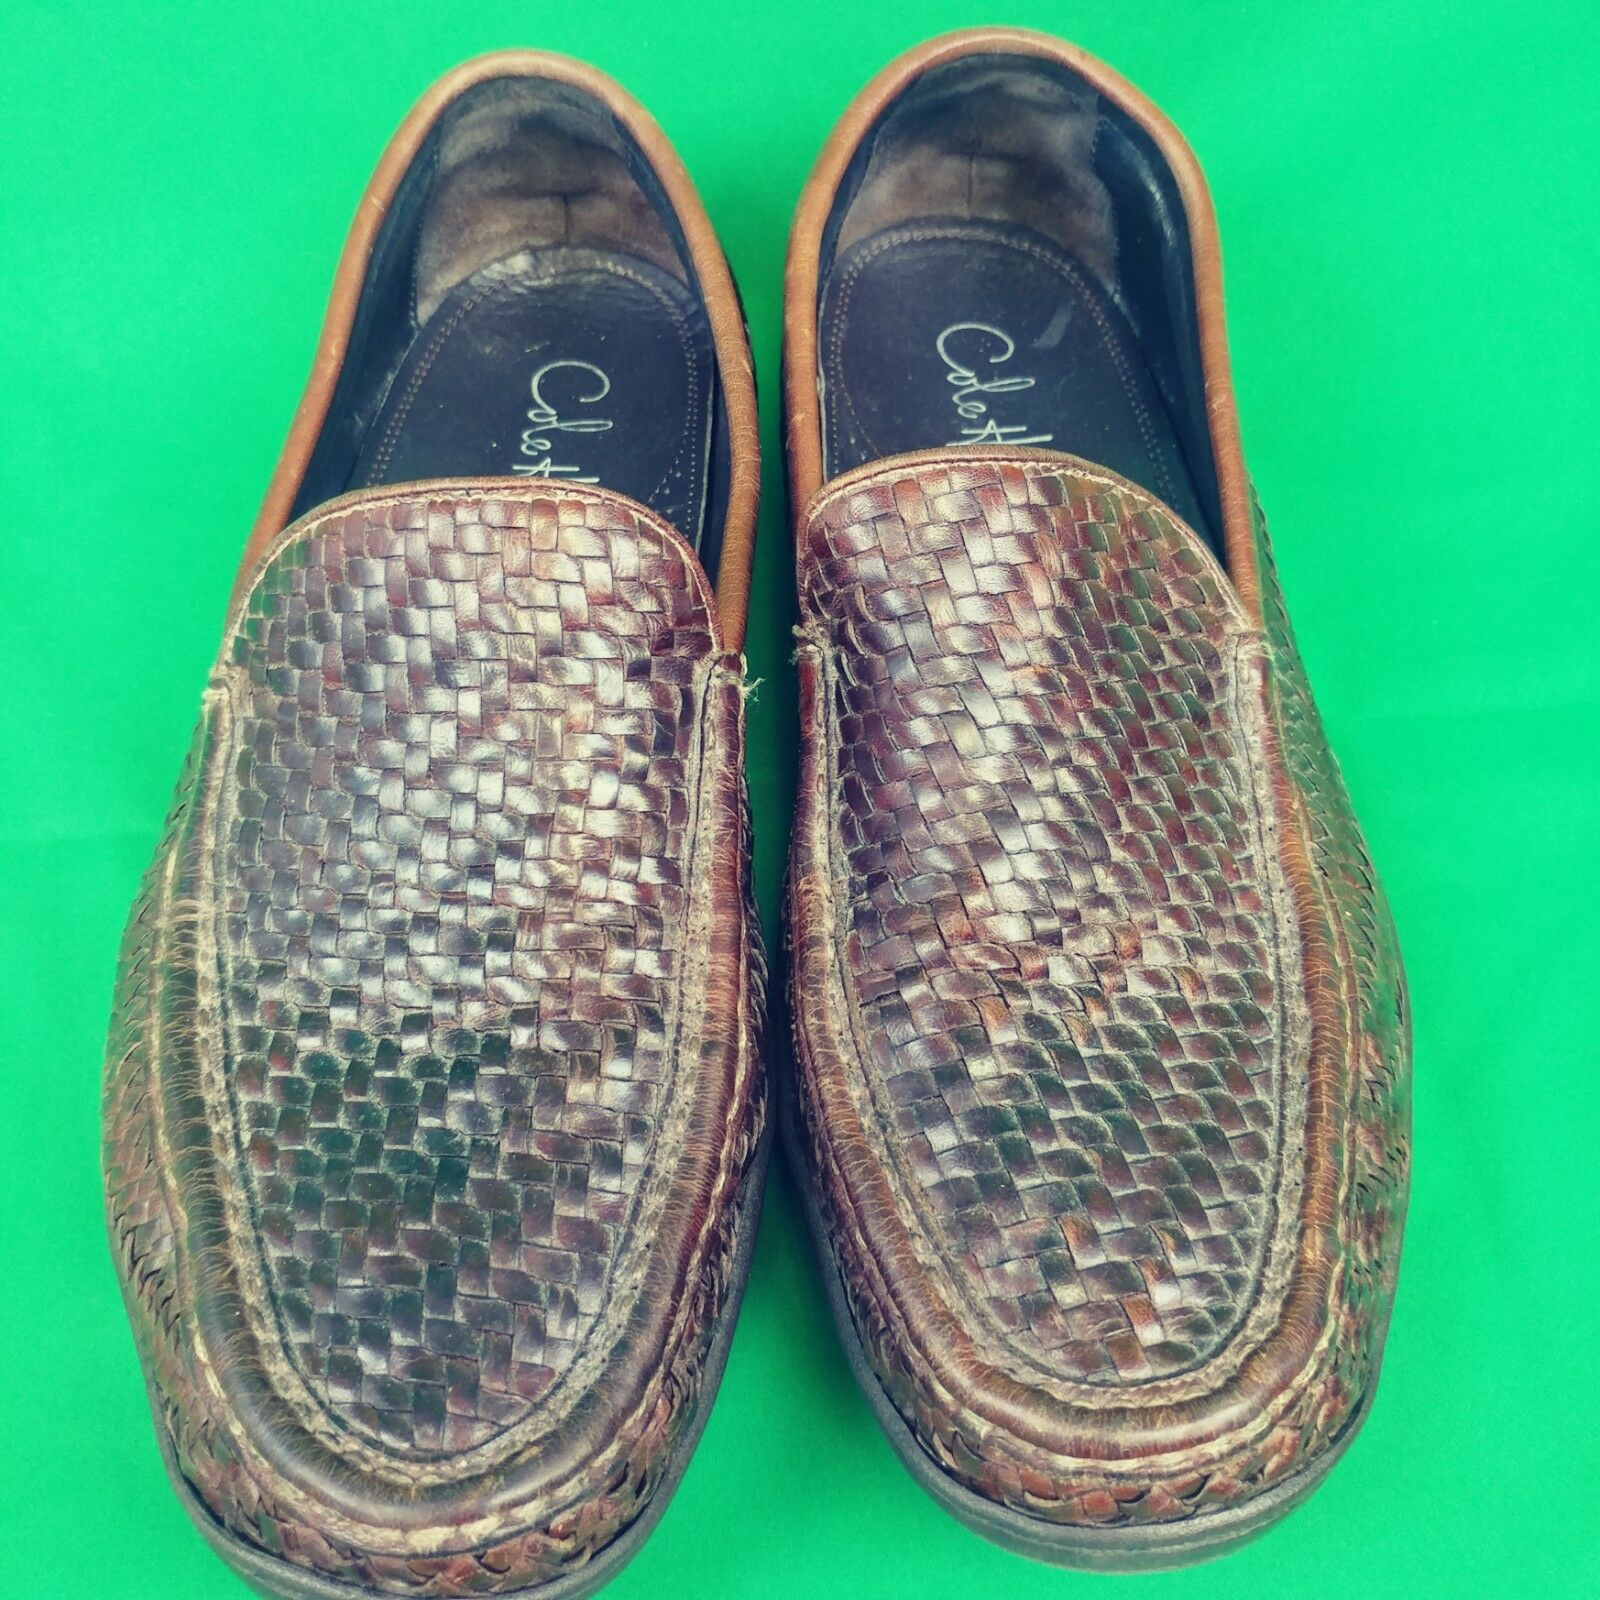 Cole Haan Mens shoes Loafers Braided Woven Leather 9.5 M Slip On Casual